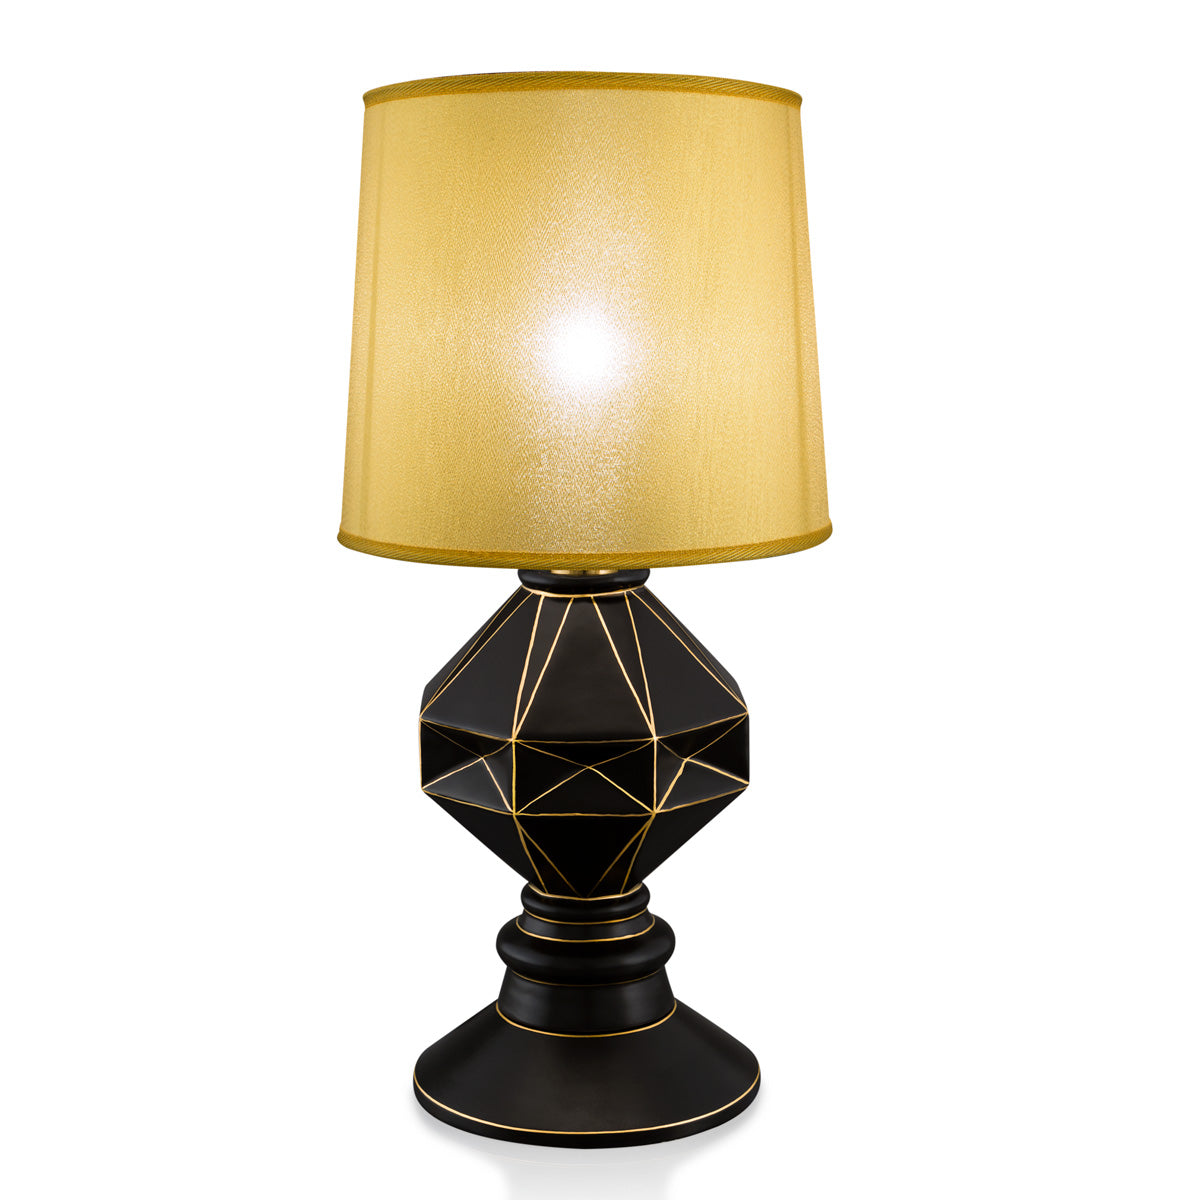 Hexagonal ceramic table lamp with gold